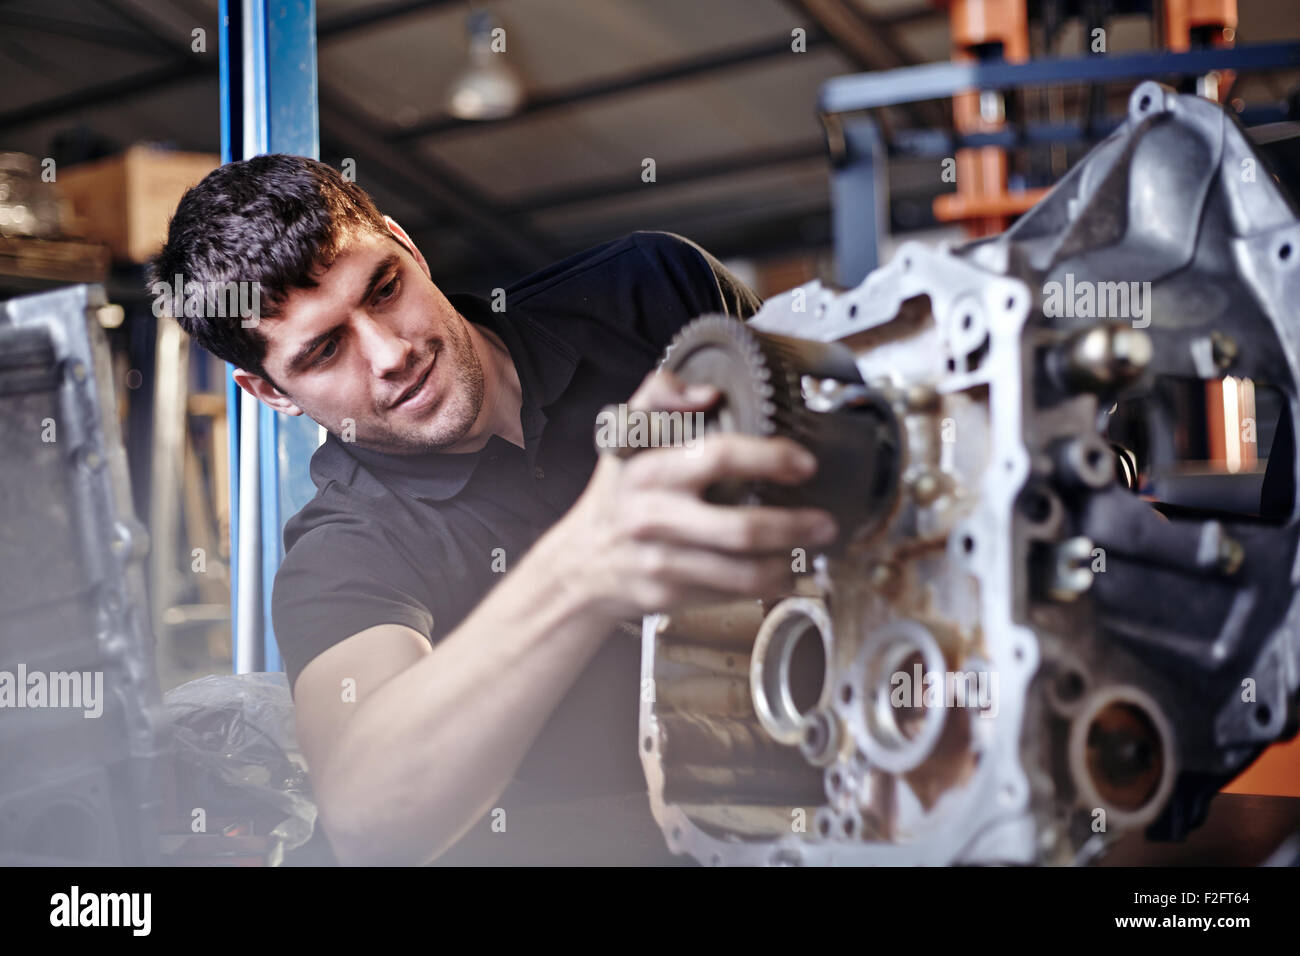 Mechanic fixing part in auto repair shop - Stock Image